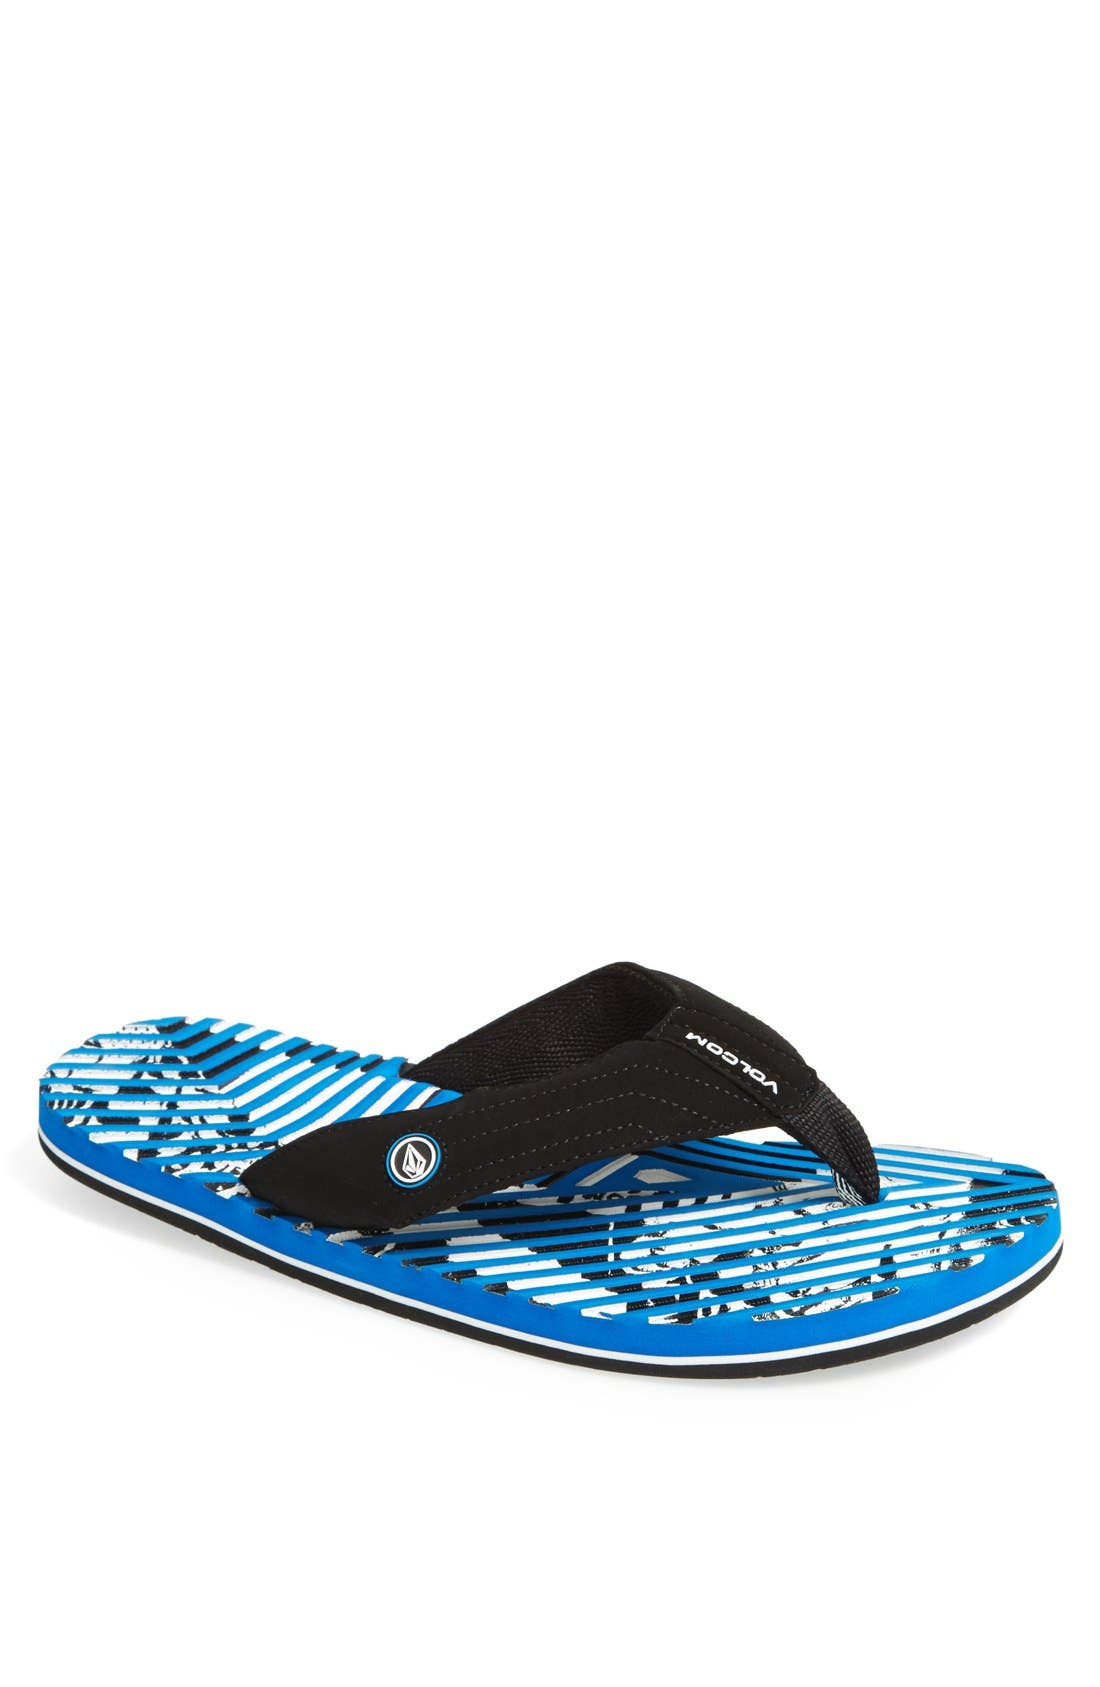 Alternate Image 1 Selected - Volcom 'Fraction' Flip Flop (Men)